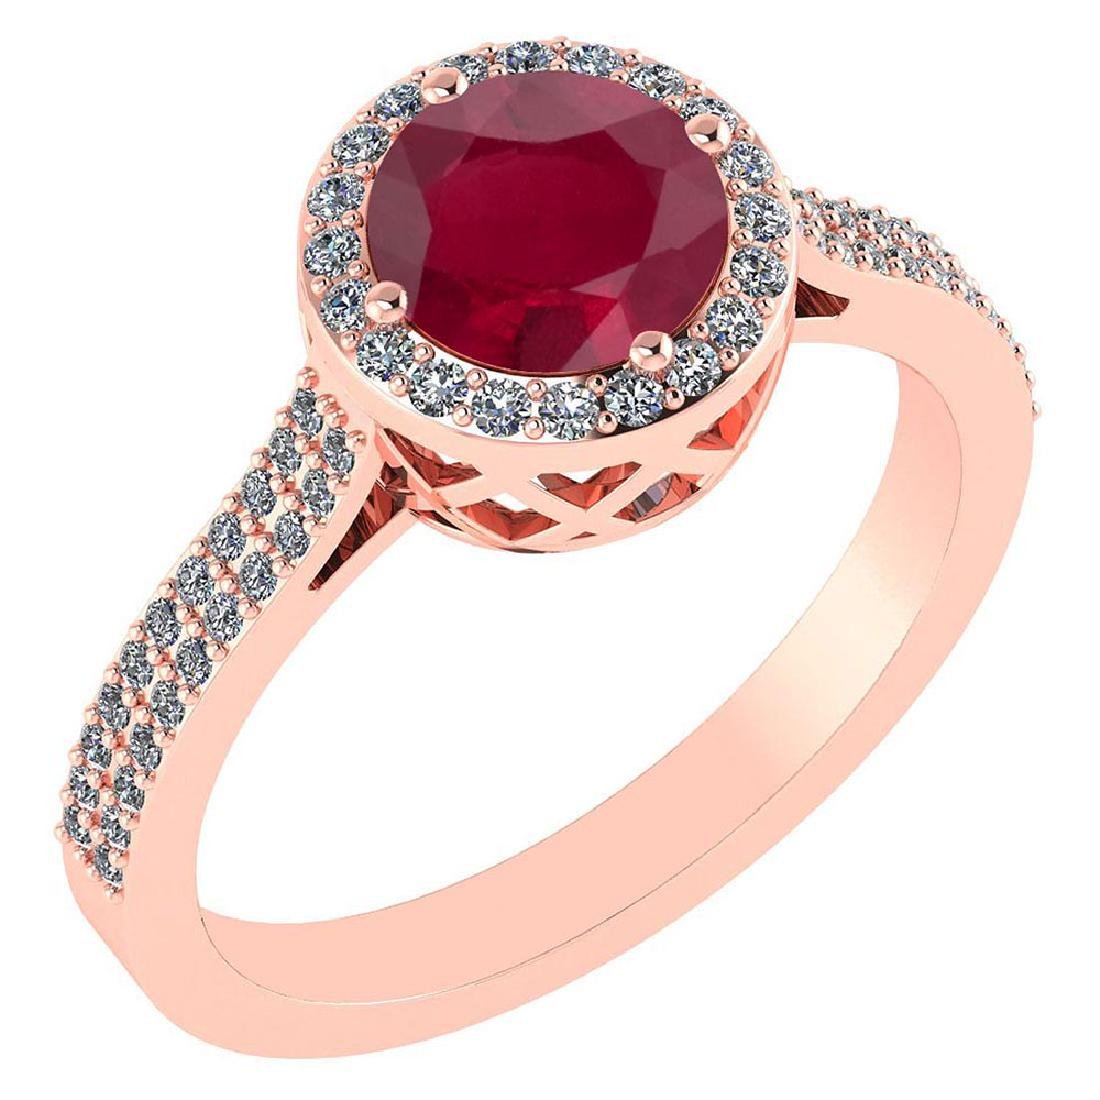 1.77 Ctw Ruby And Diamond 14k Rose Gold Halo Ring